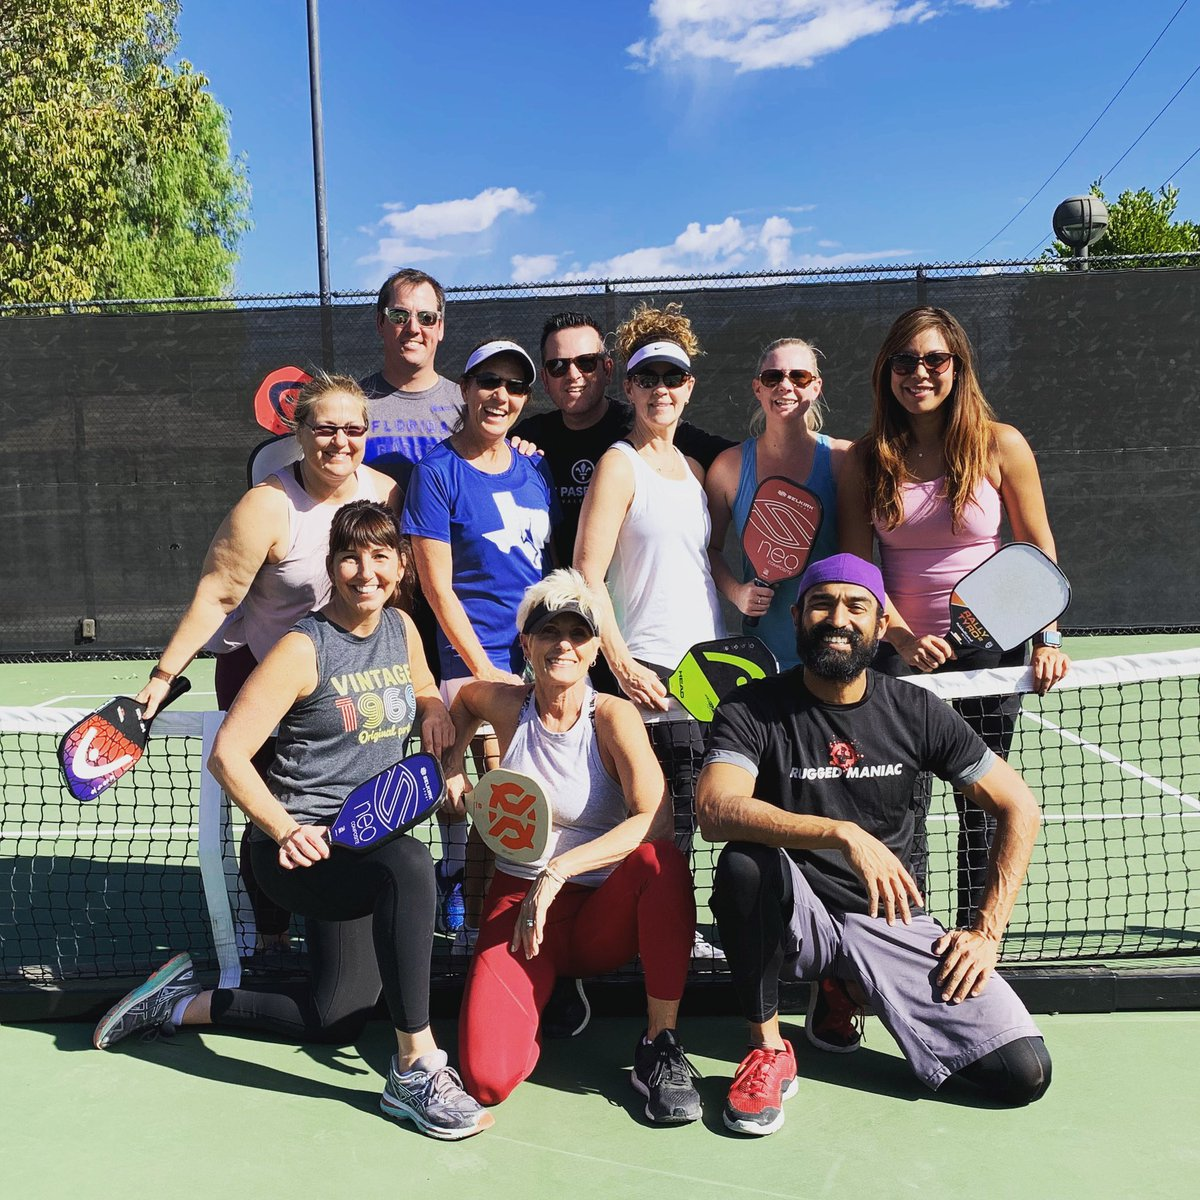 Congratulations to the Greatest Results group @PaseoClub for trying out Pickleball for the first time. We had a great time. #mothergooseandmoose #pickleball #greatestresults #pickleballwithmoosepic.twitter.com/NtqkTsP0xB